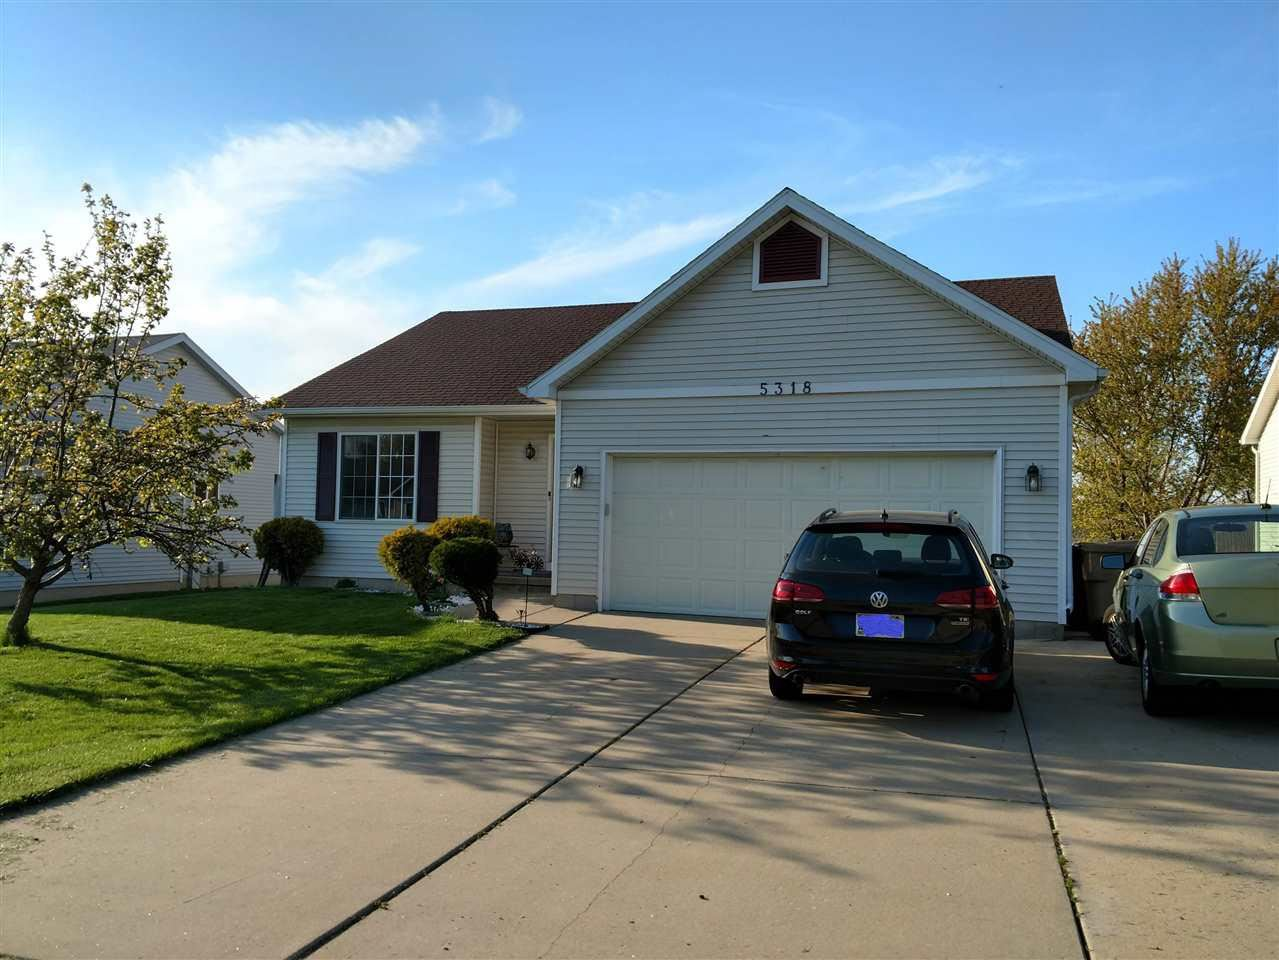 5318 Valley Edge Dr, Madison, WI 53704 - MLS#: 1884002